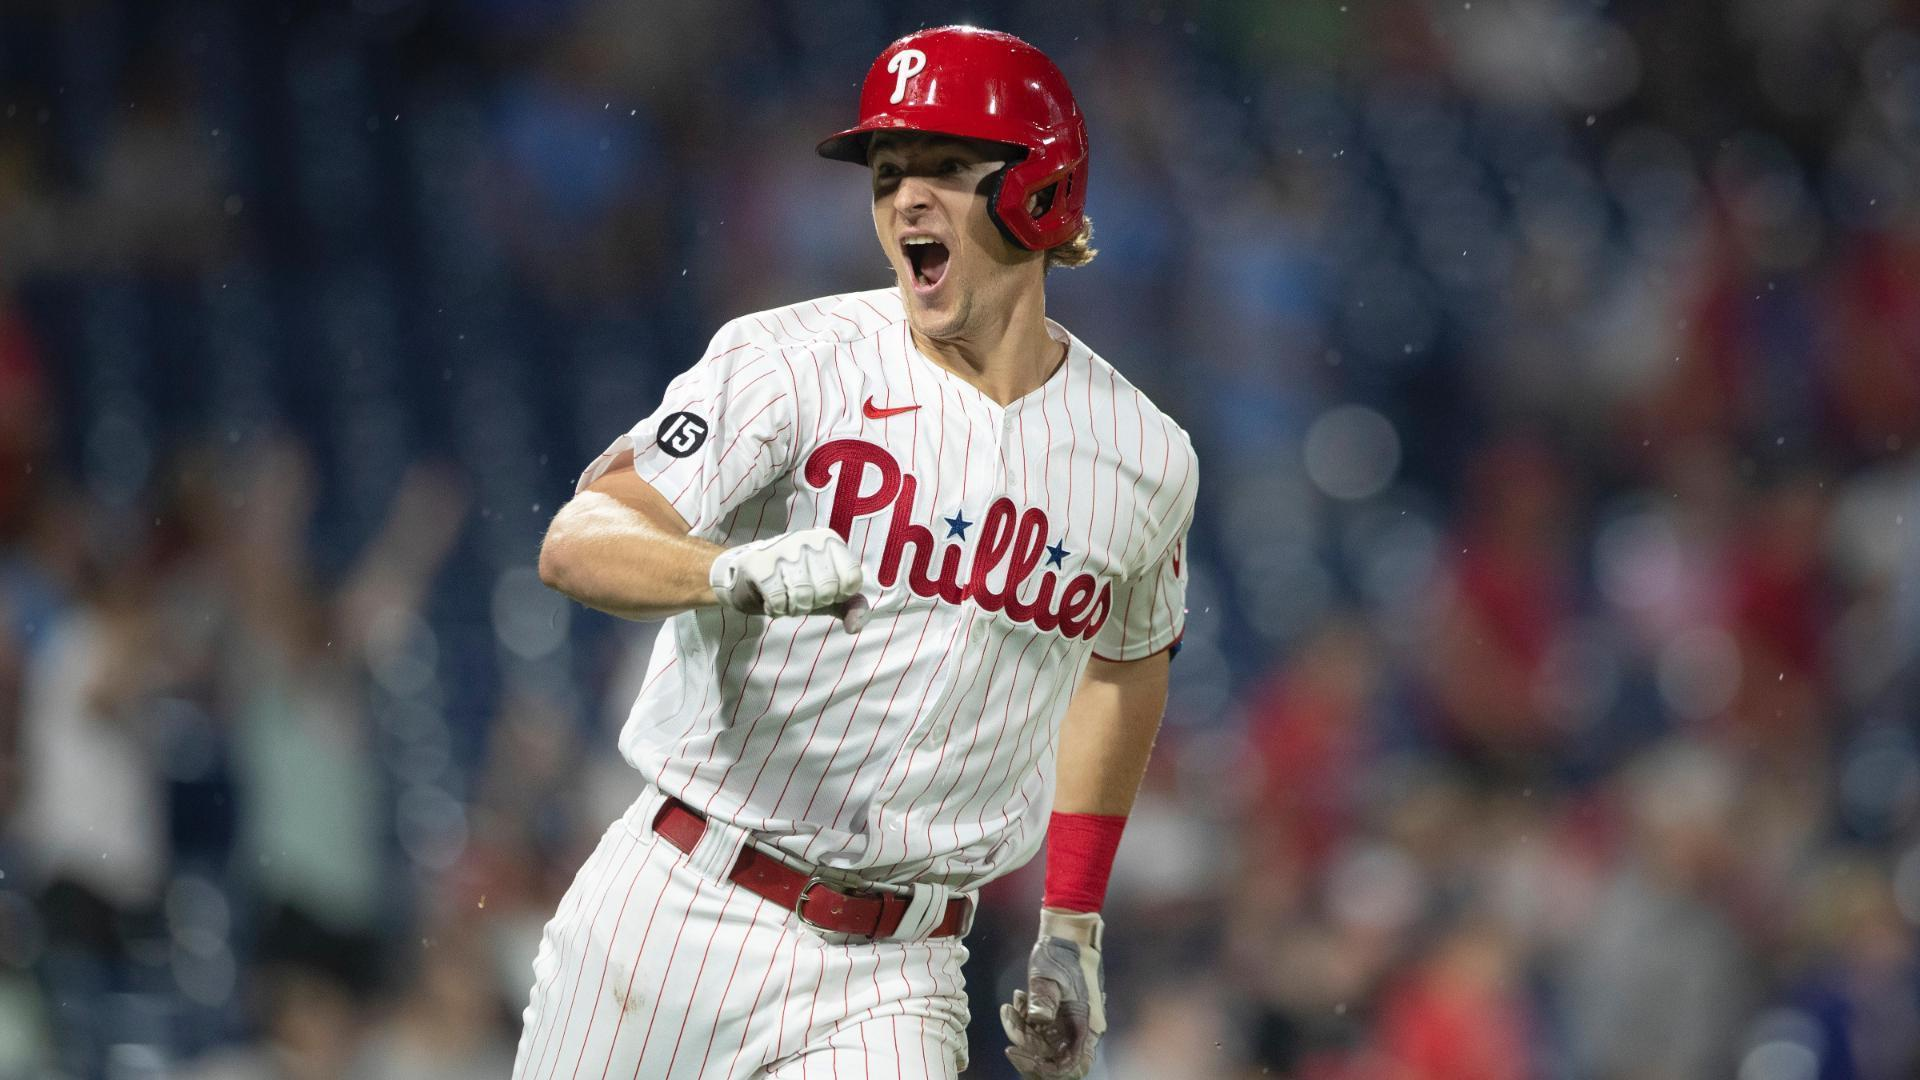 Luke Williams' first career HR is a walk-off for the Phillies